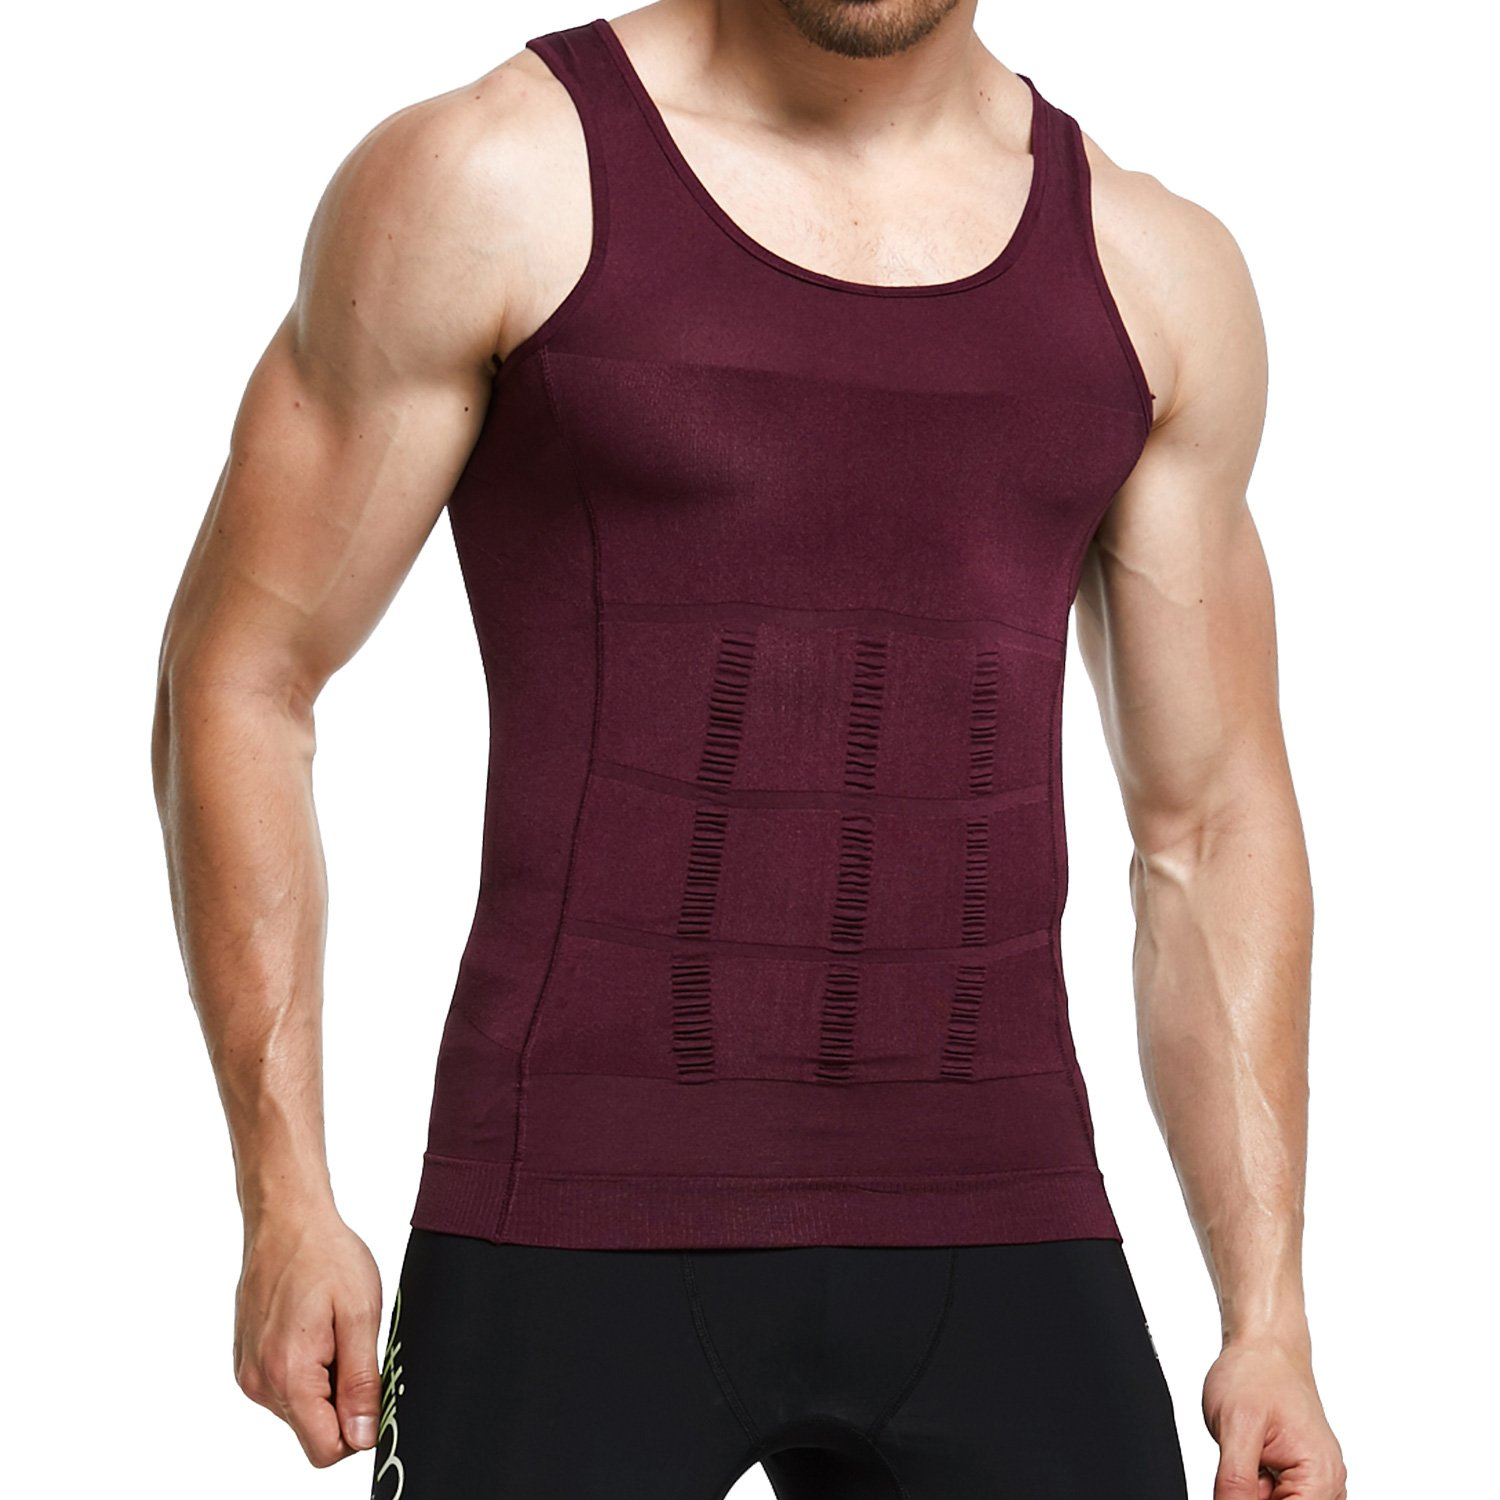 GKVK Mens Slimming Body Shaper Vest Shirt Abs Abdomen Slim, Purple, XL(chest size 106cm-110cm/42inches-44inches)